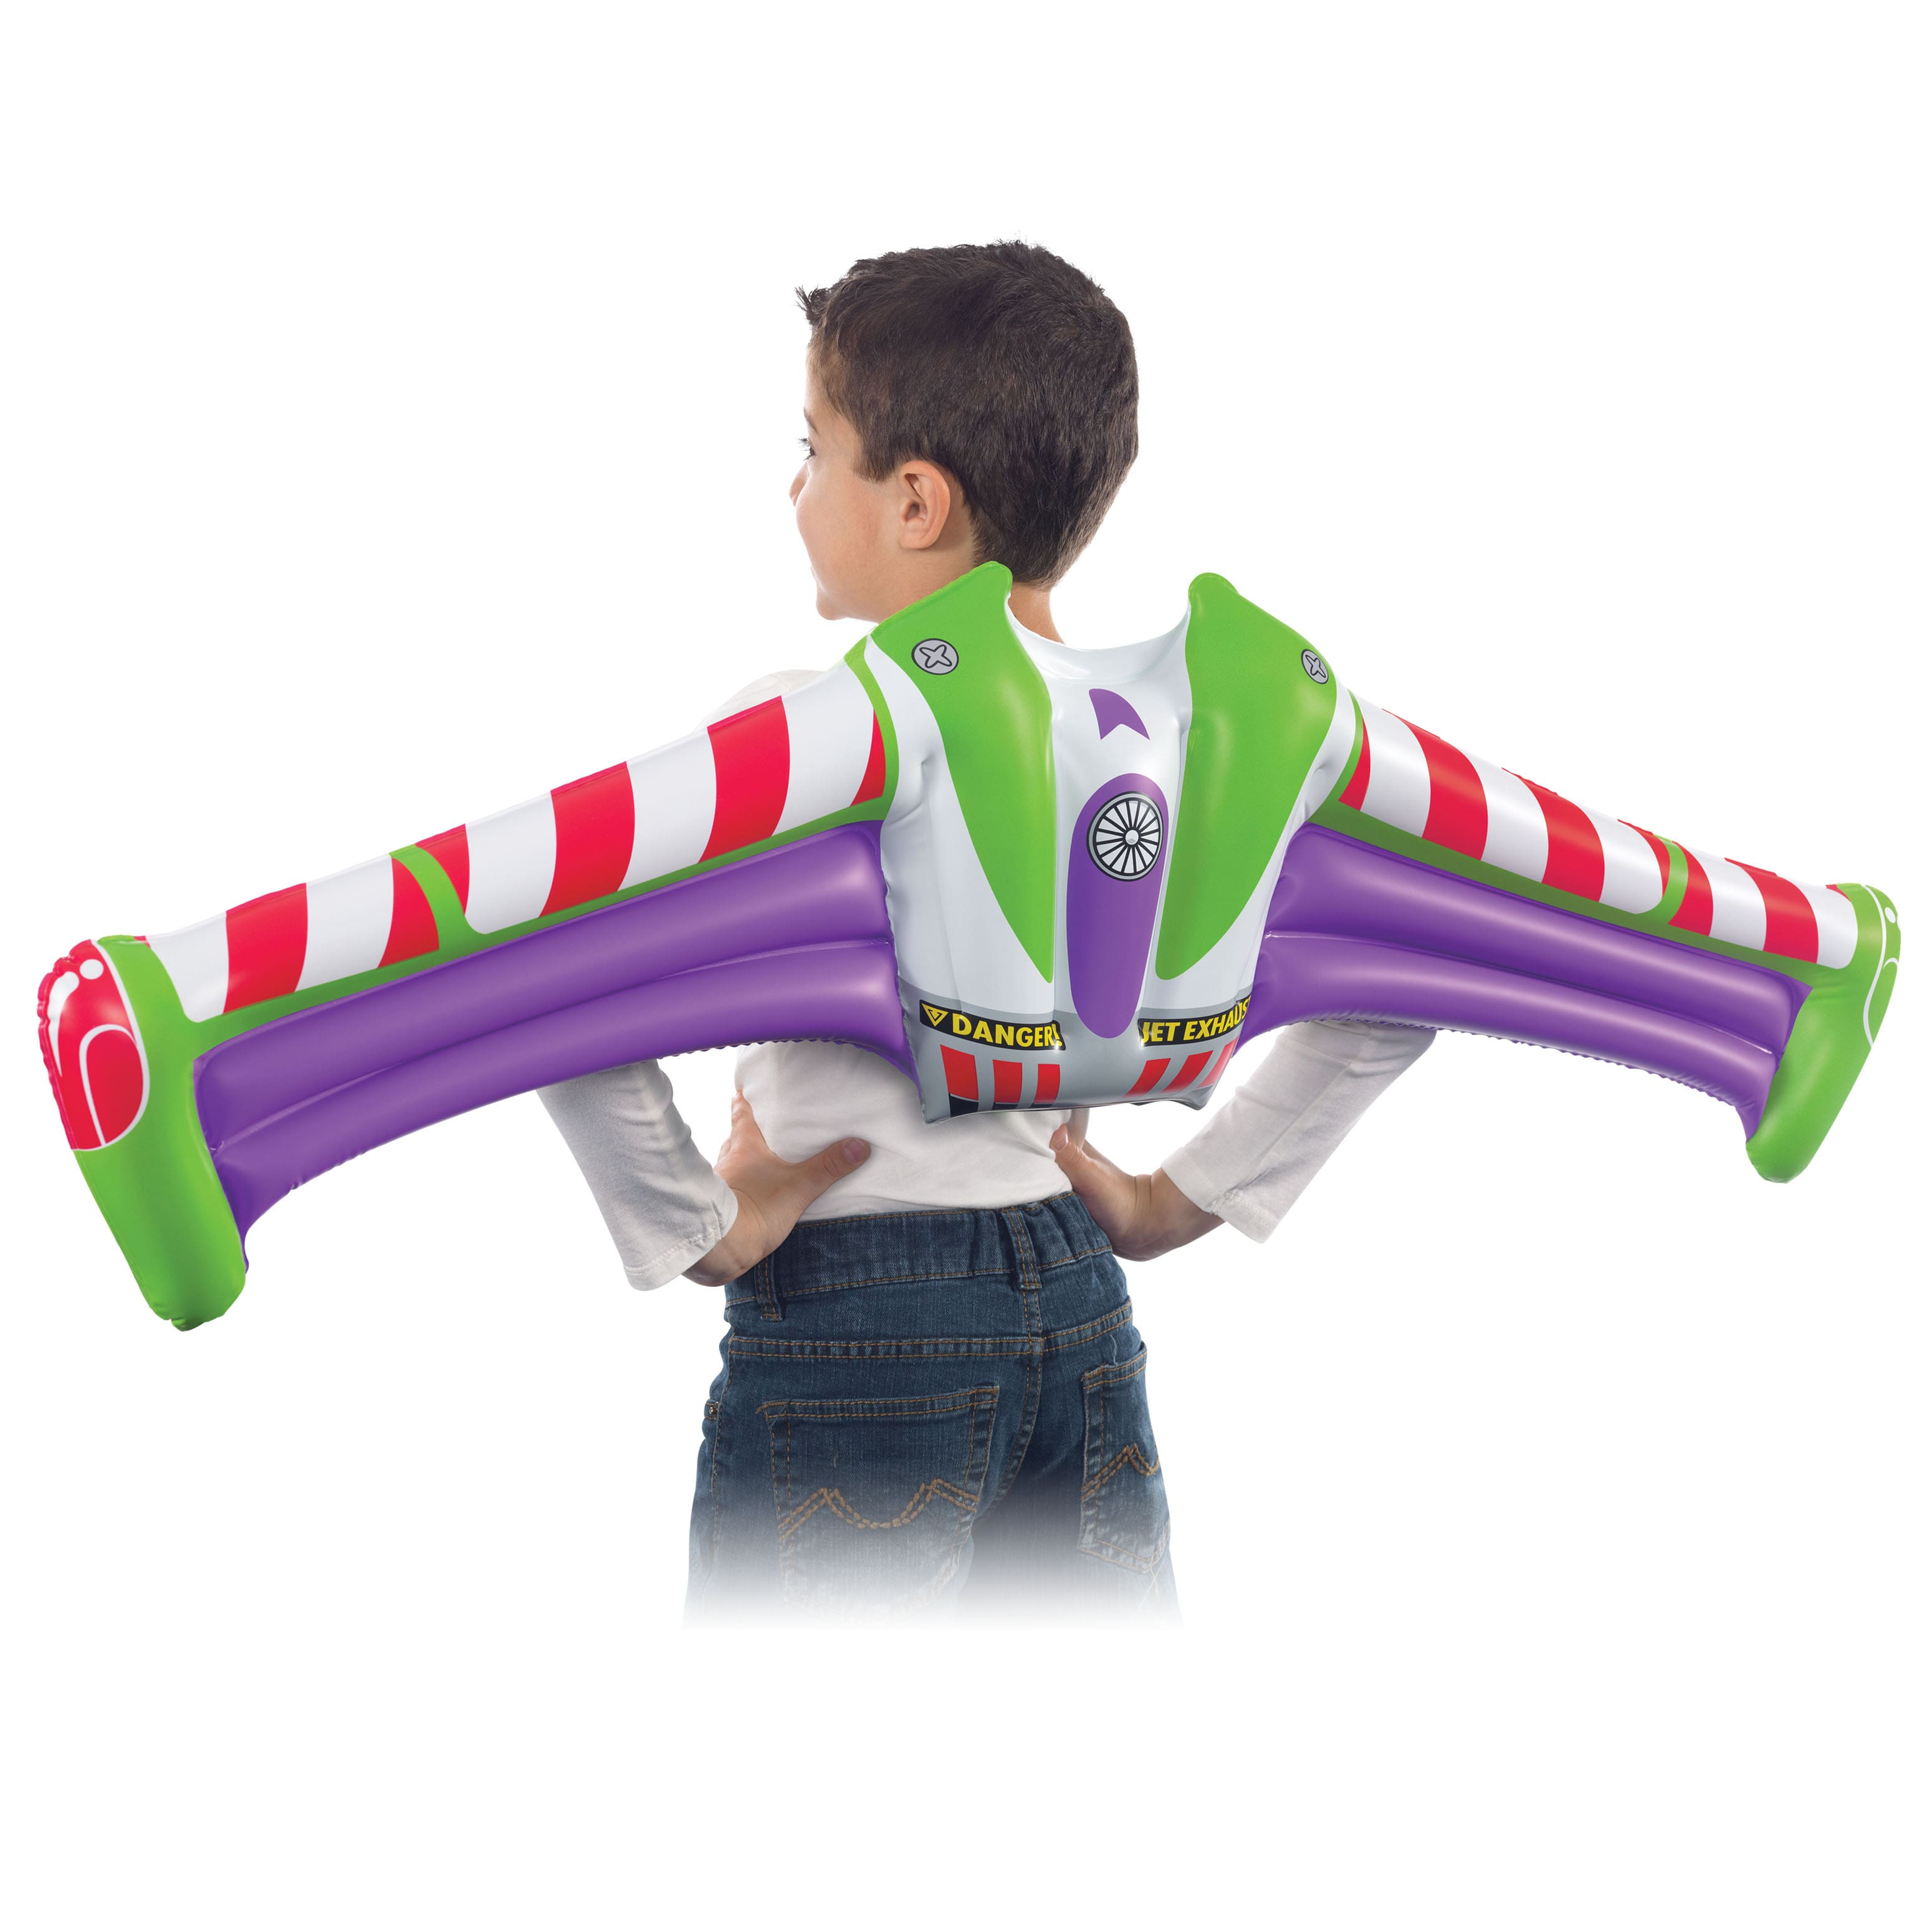 Toy Story 4 Inflatable Space Ranger Jet Pack for $8 + Free store pickup at Walmart